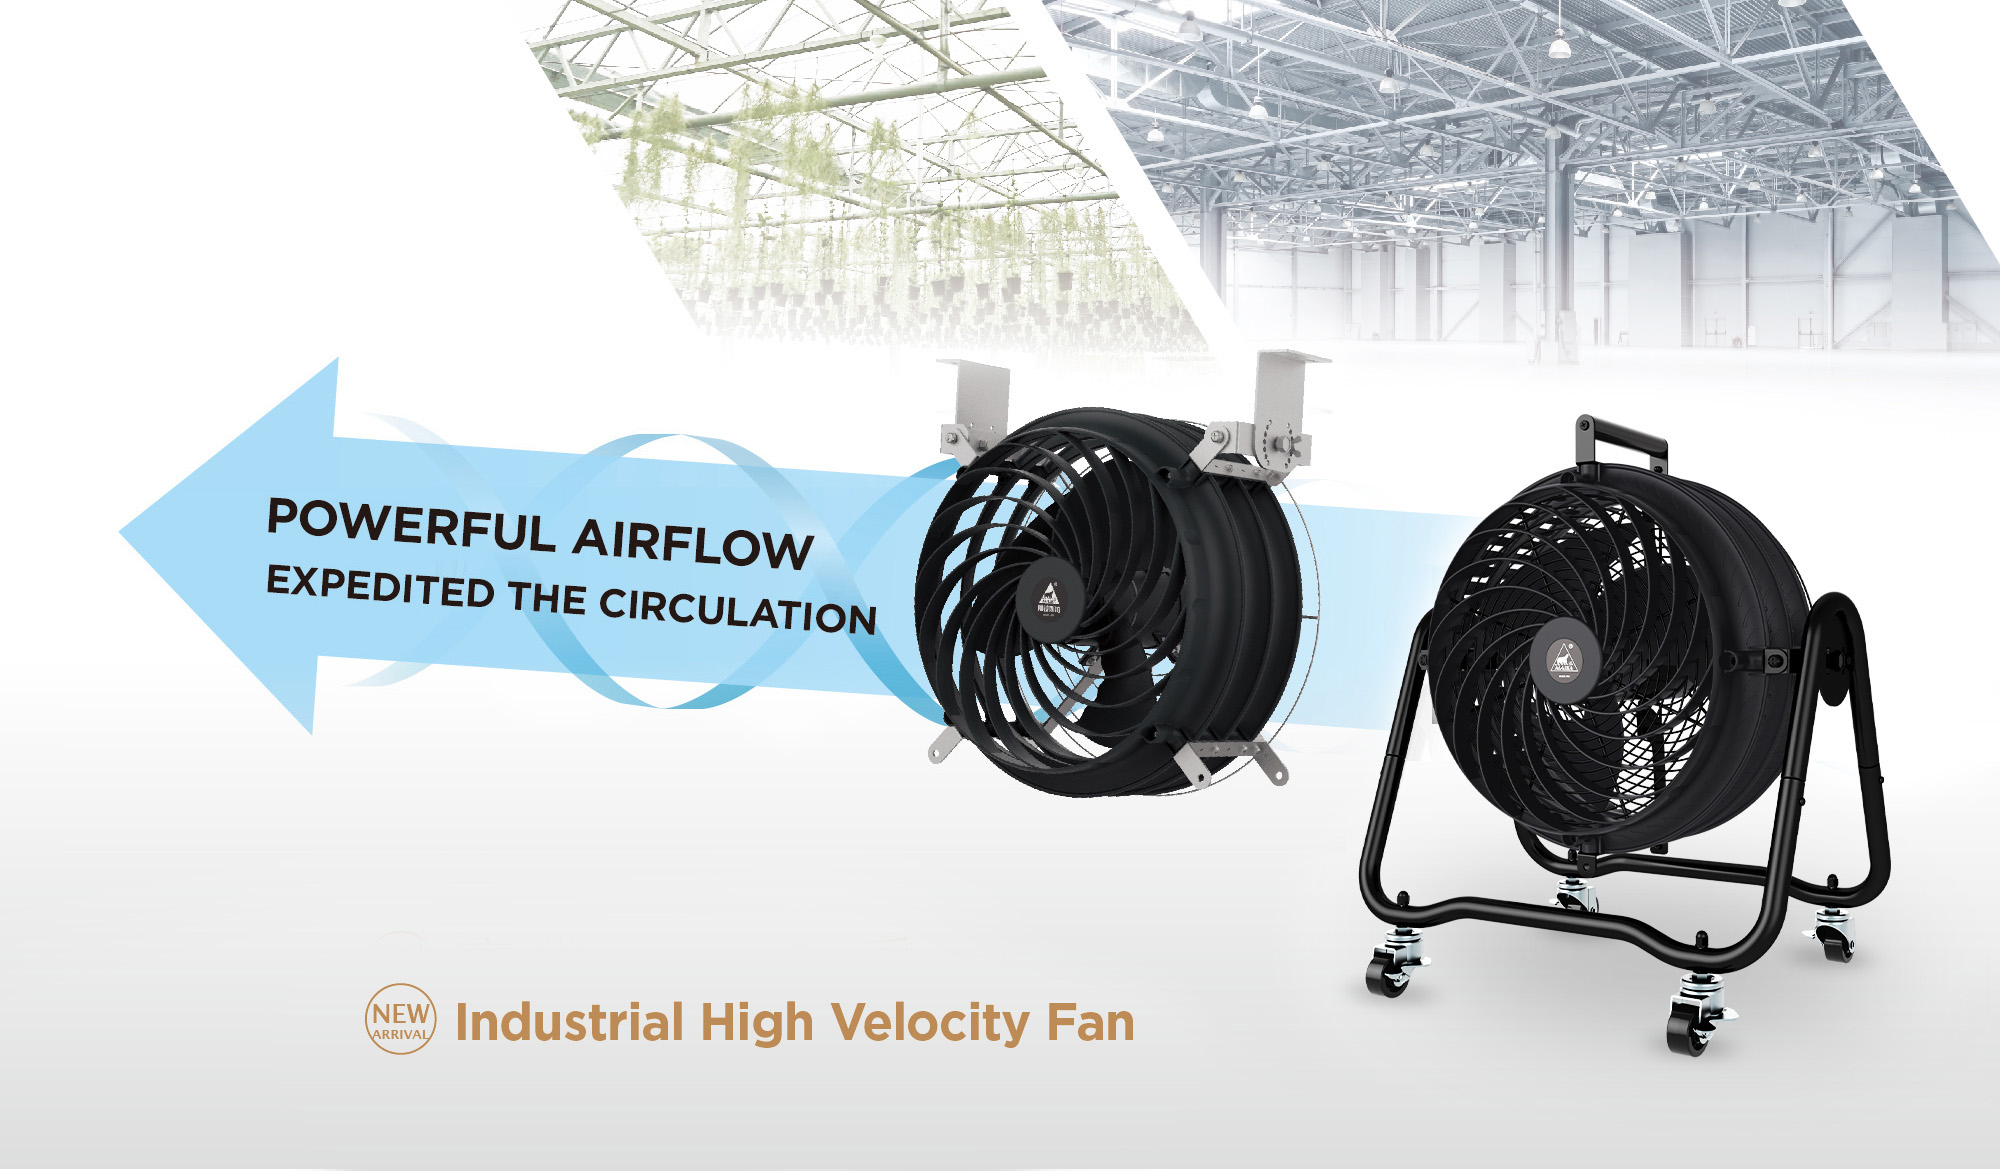 High Velocity Fans